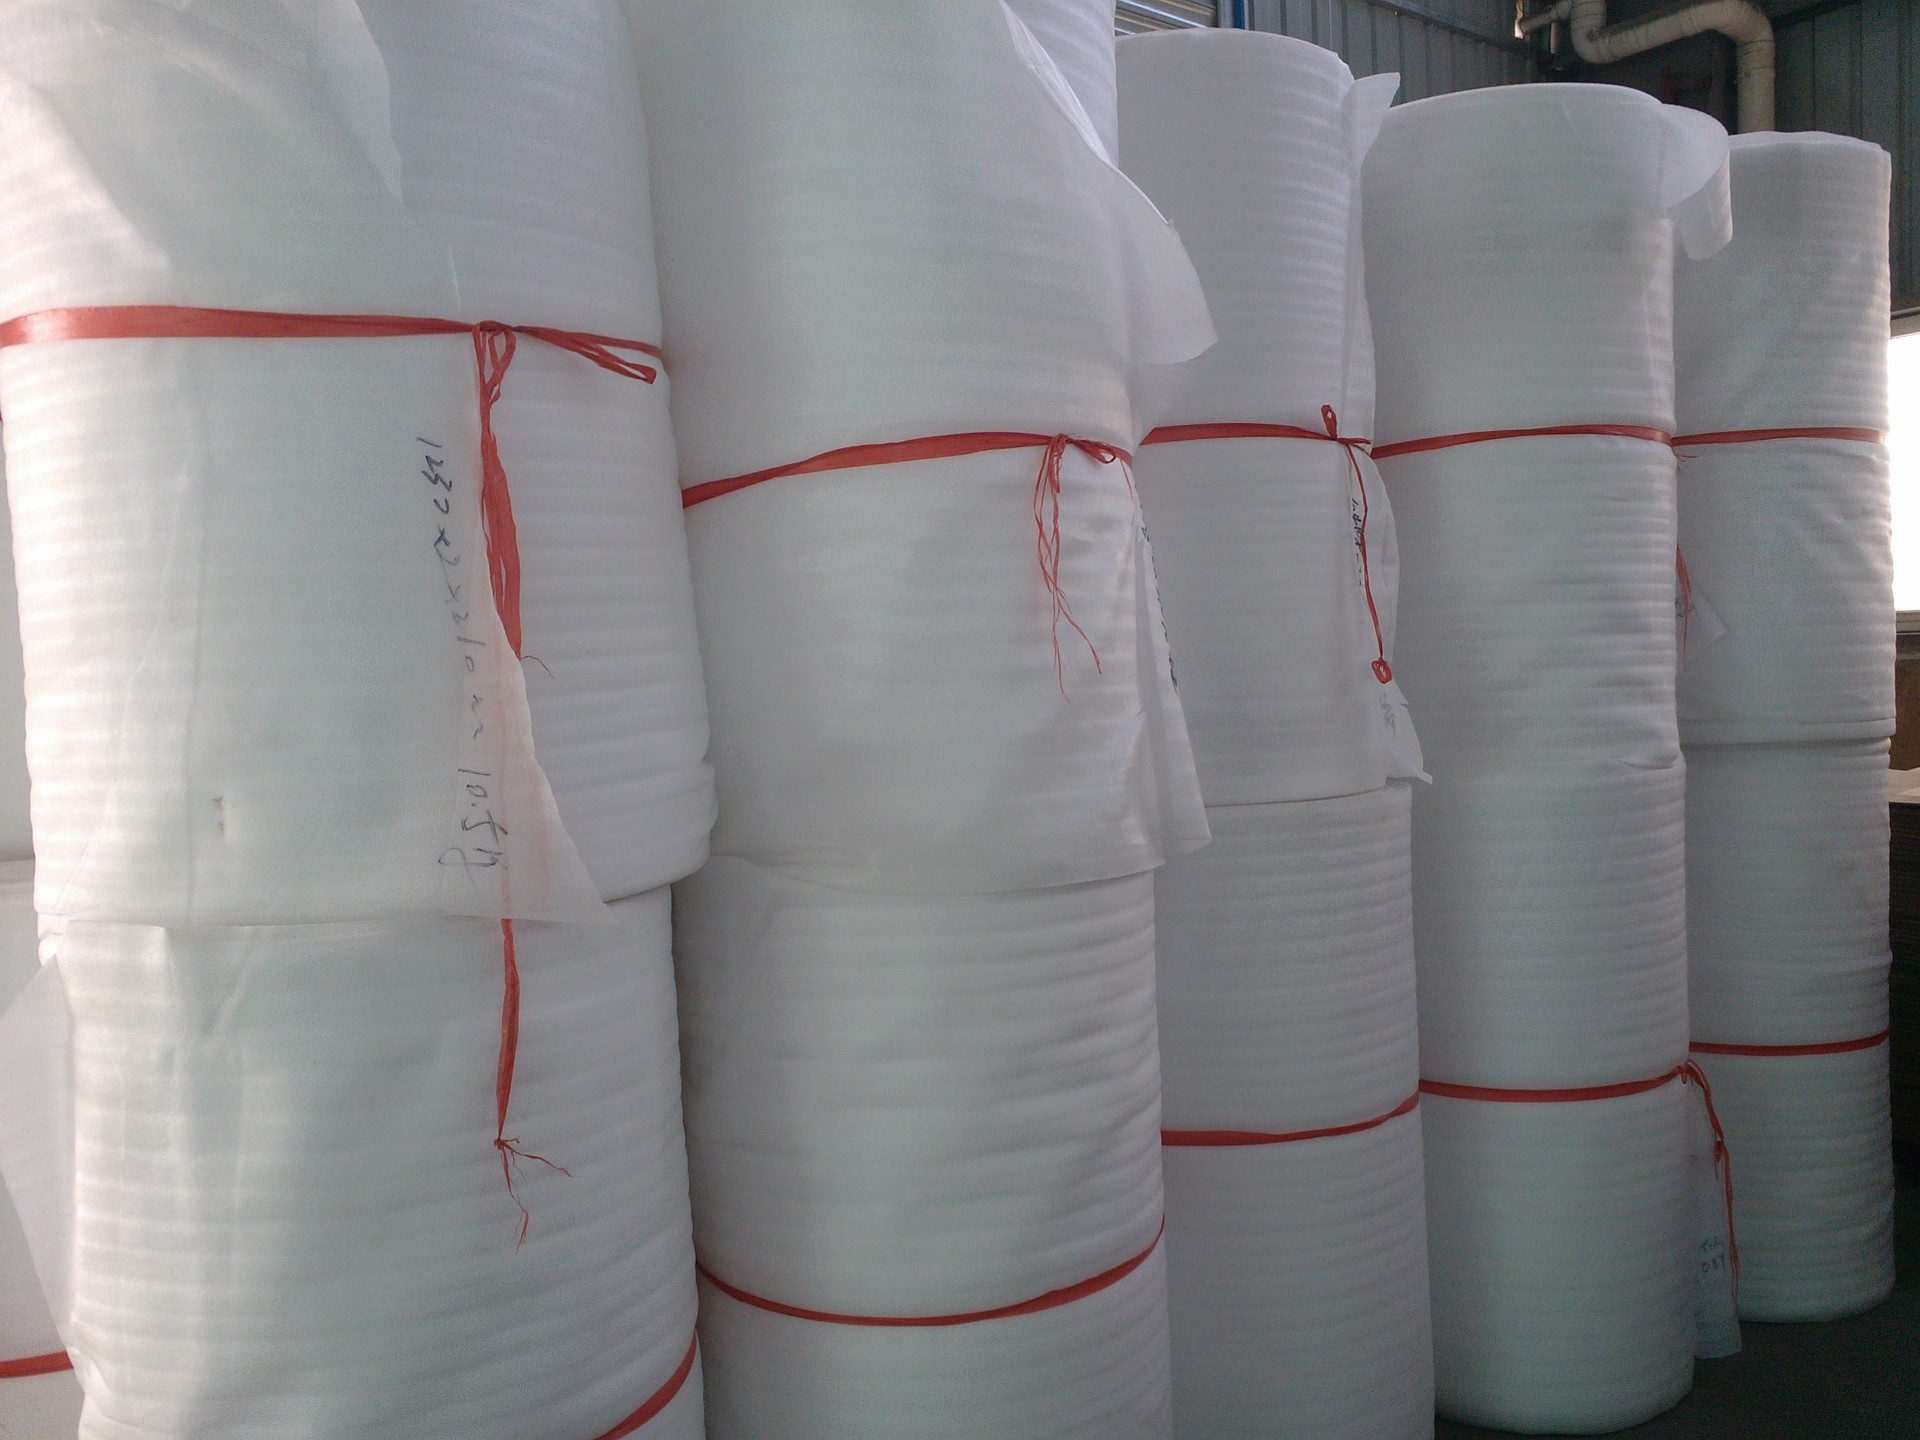 Mút xốp   EPE lined packaging / protective packaging EPE liners, EPE packaging lined with non-slip